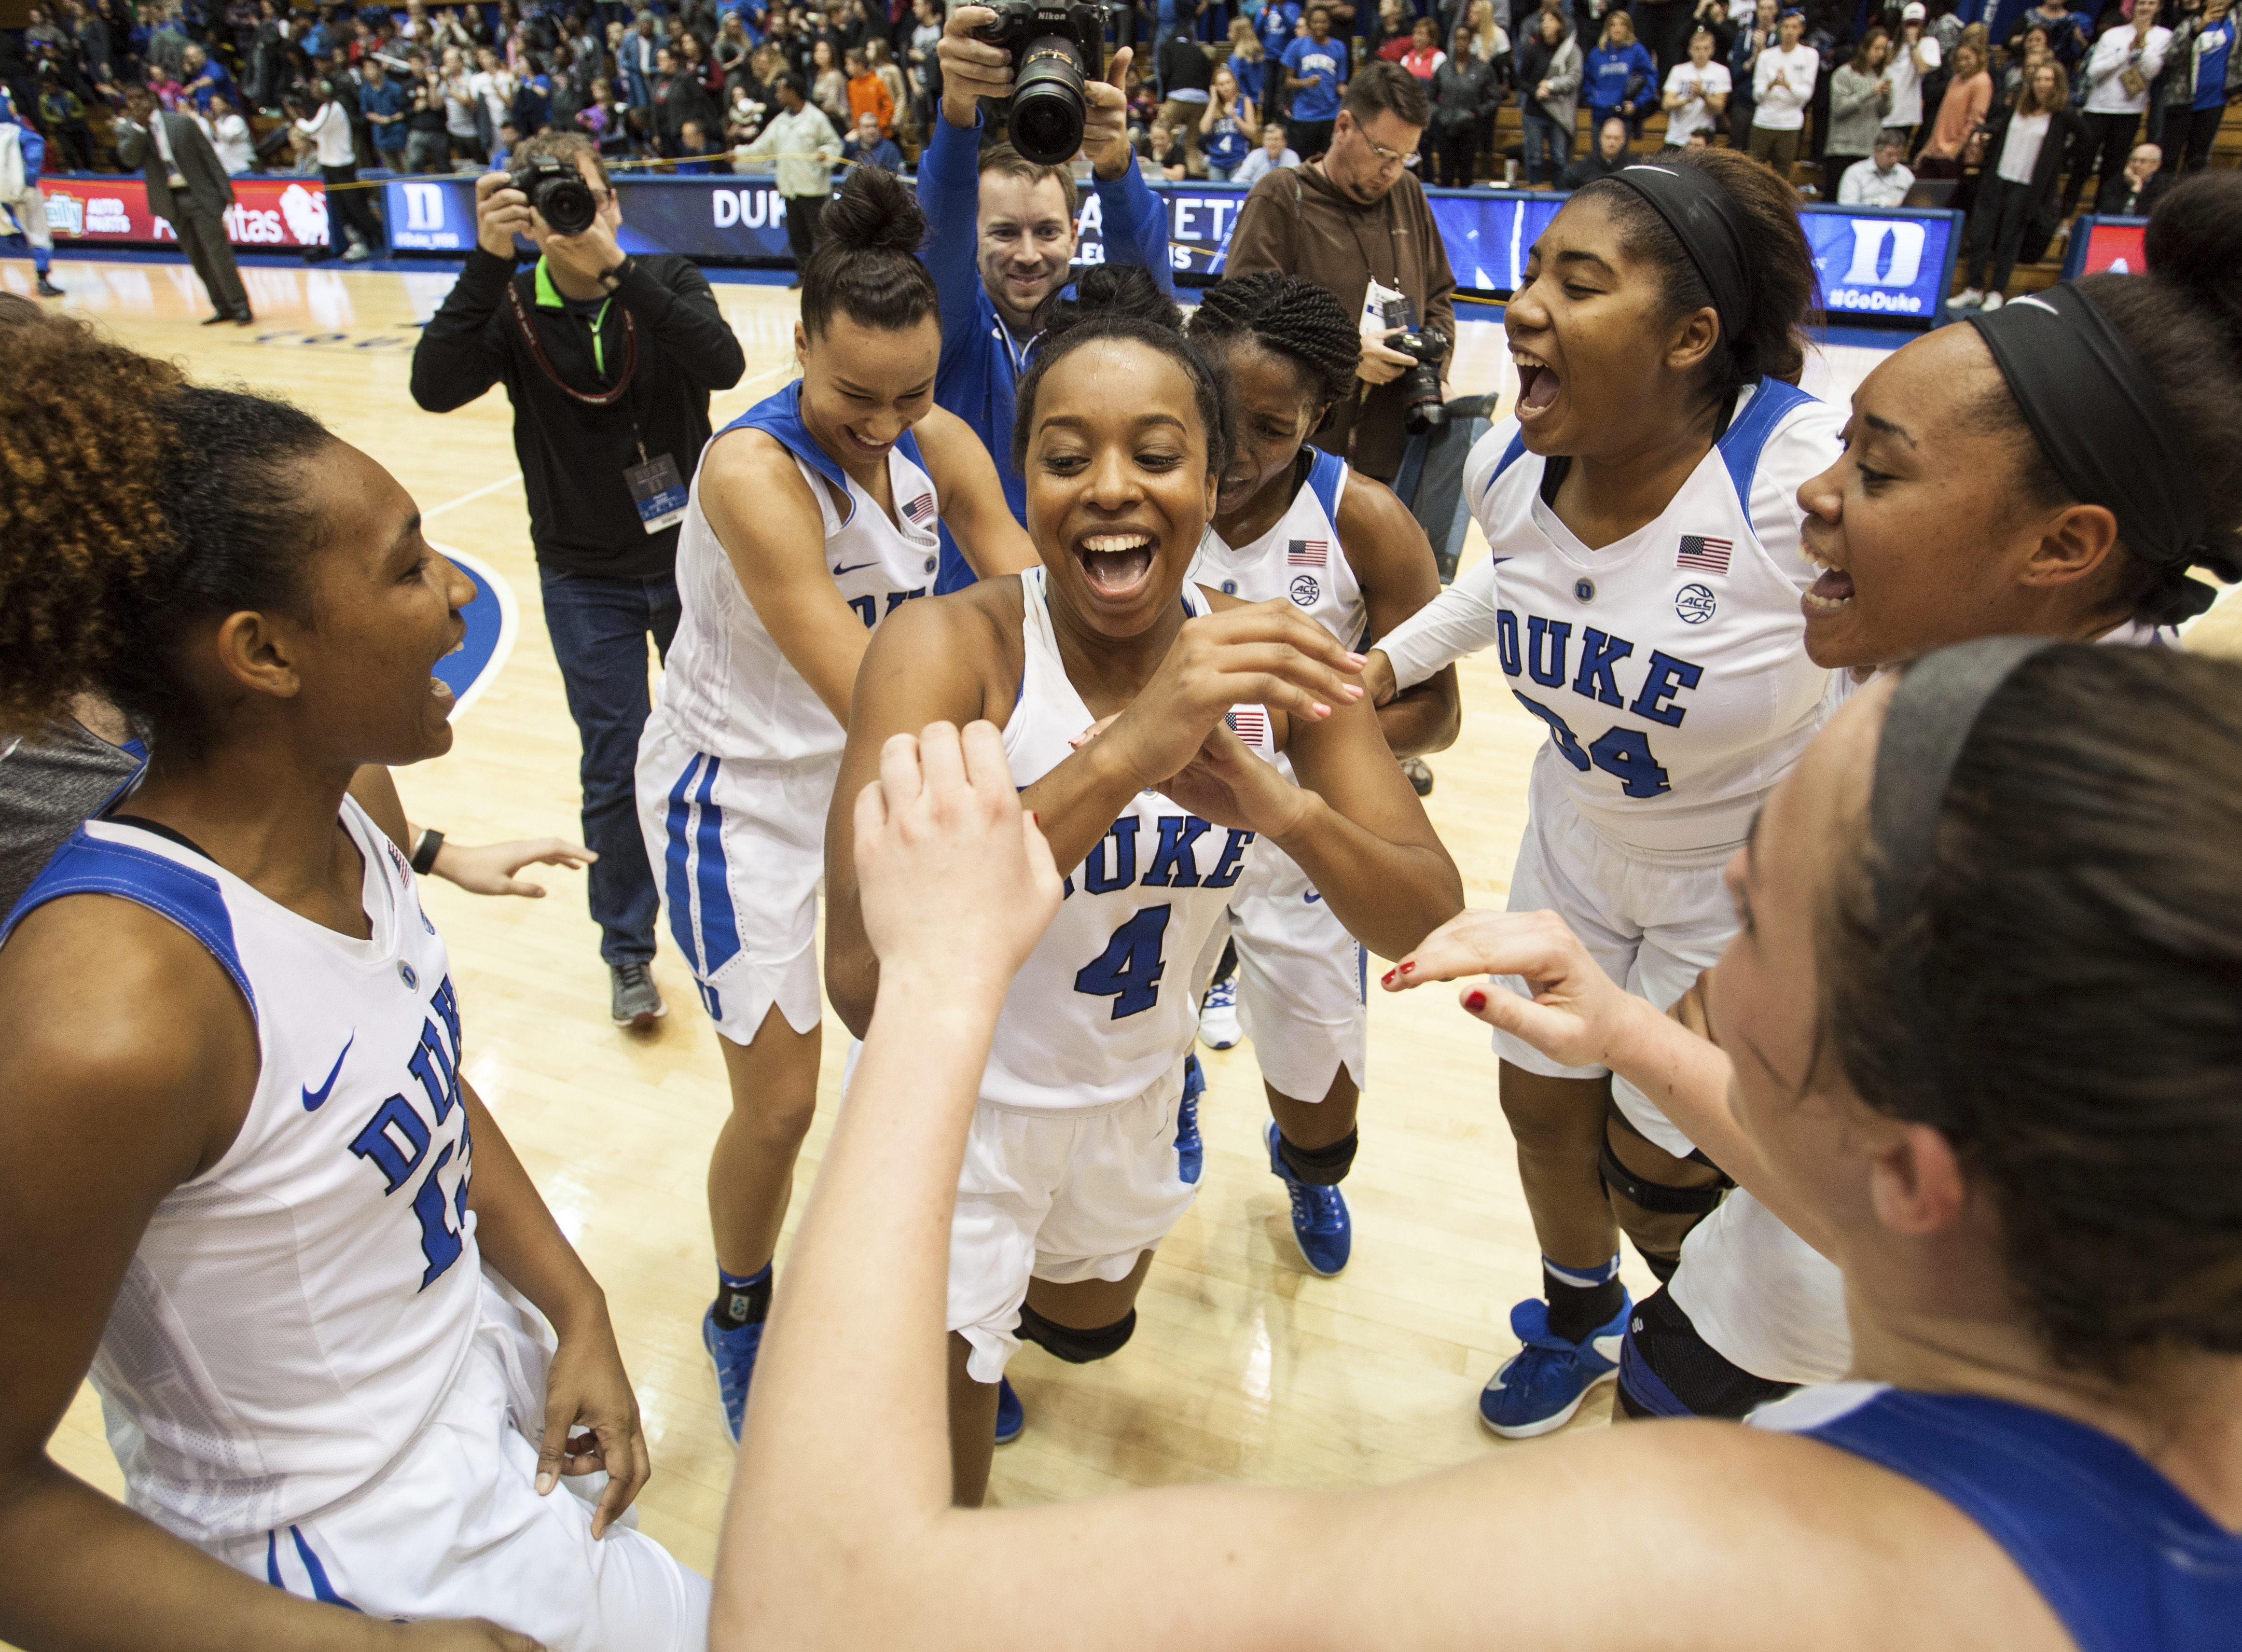 FILE - In this Dec. 4, 2016, file photo, Duke's Lexie Brown (4) celebrates with her teammates following a victory in an NCAA college basketball game against South Carolina, in Durham, N.C. Lexie Browns father is best known for his creative dunks. The daug